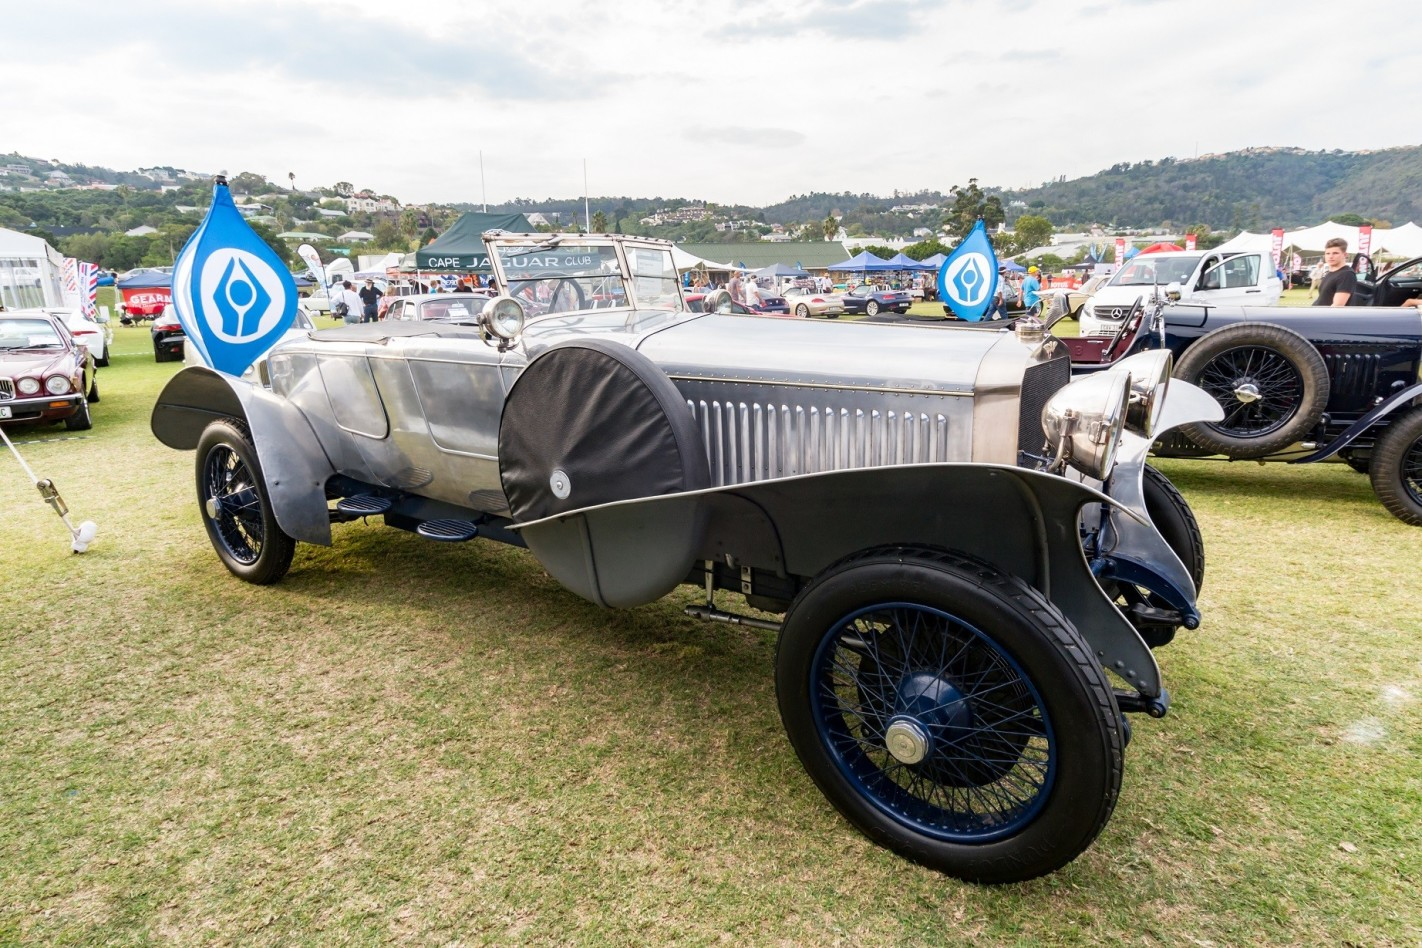 THE 2018 KNYSNA MOTOR SHOW AIMS FOR 400 CLASIC CARS AND MOTORCYCLES ...